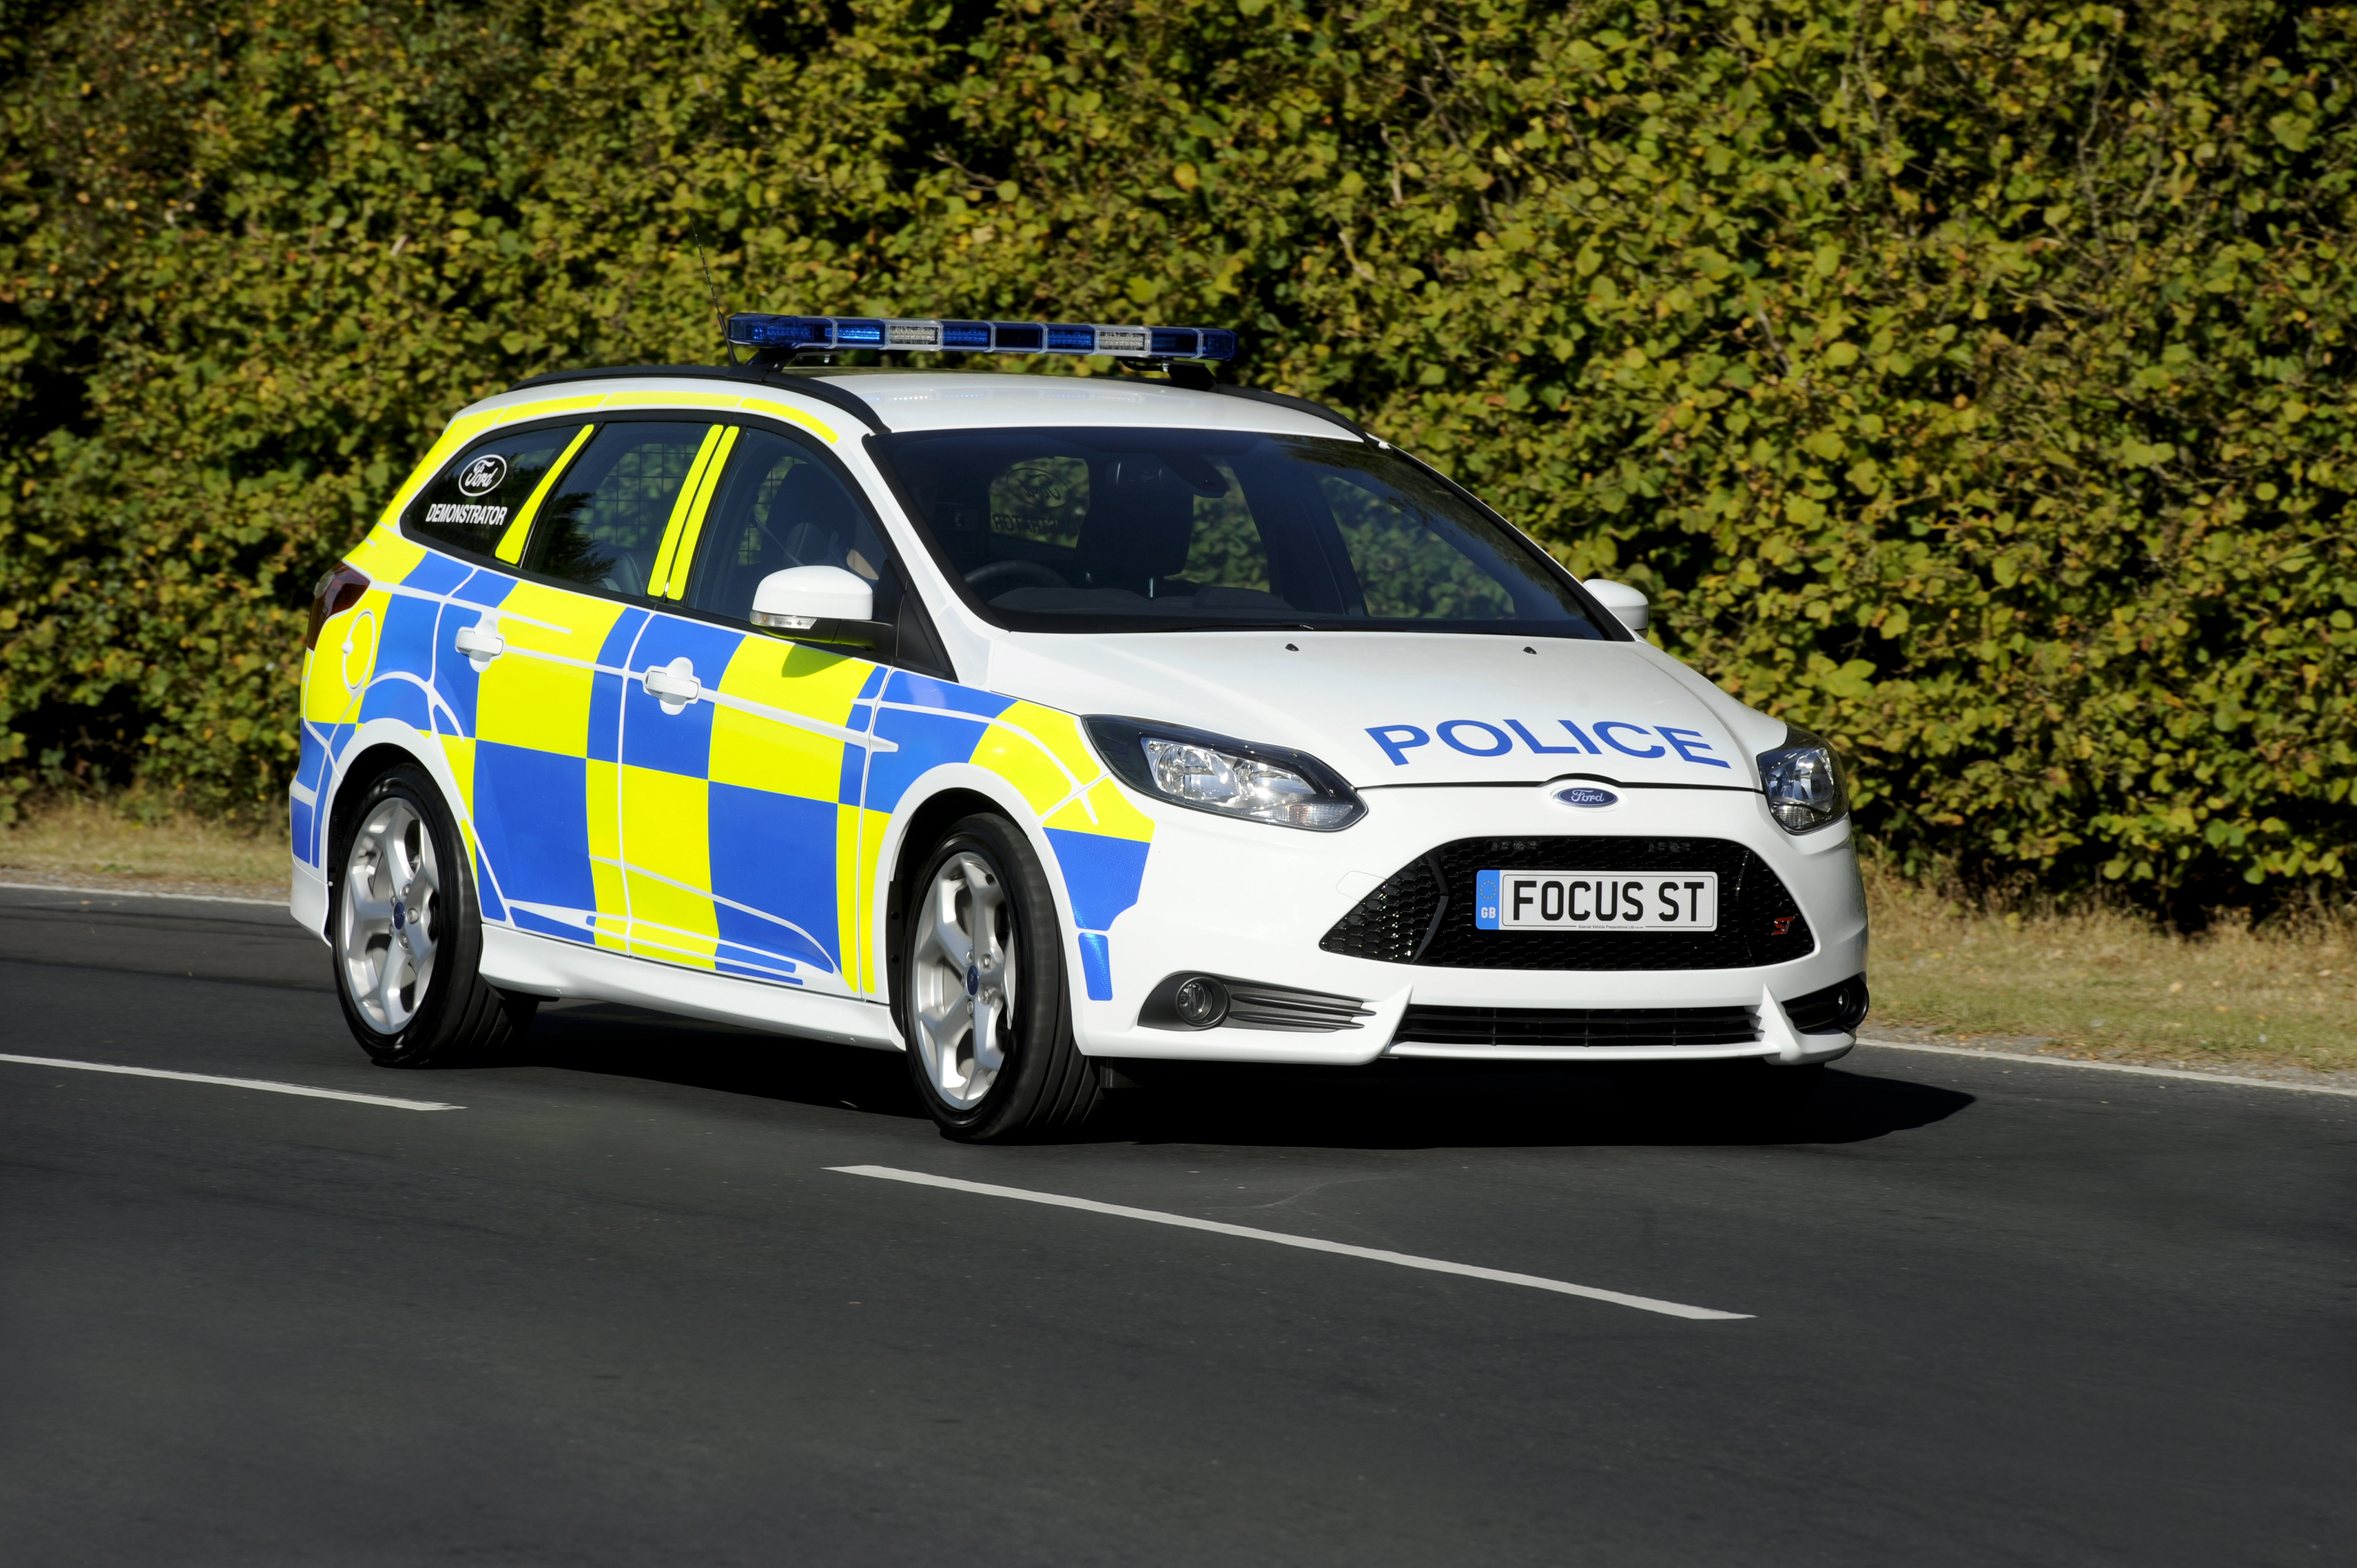 2013 ford focus st police patrol vehicle review top speed. Black Bedroom Furniture Sets. Home Design Ideas